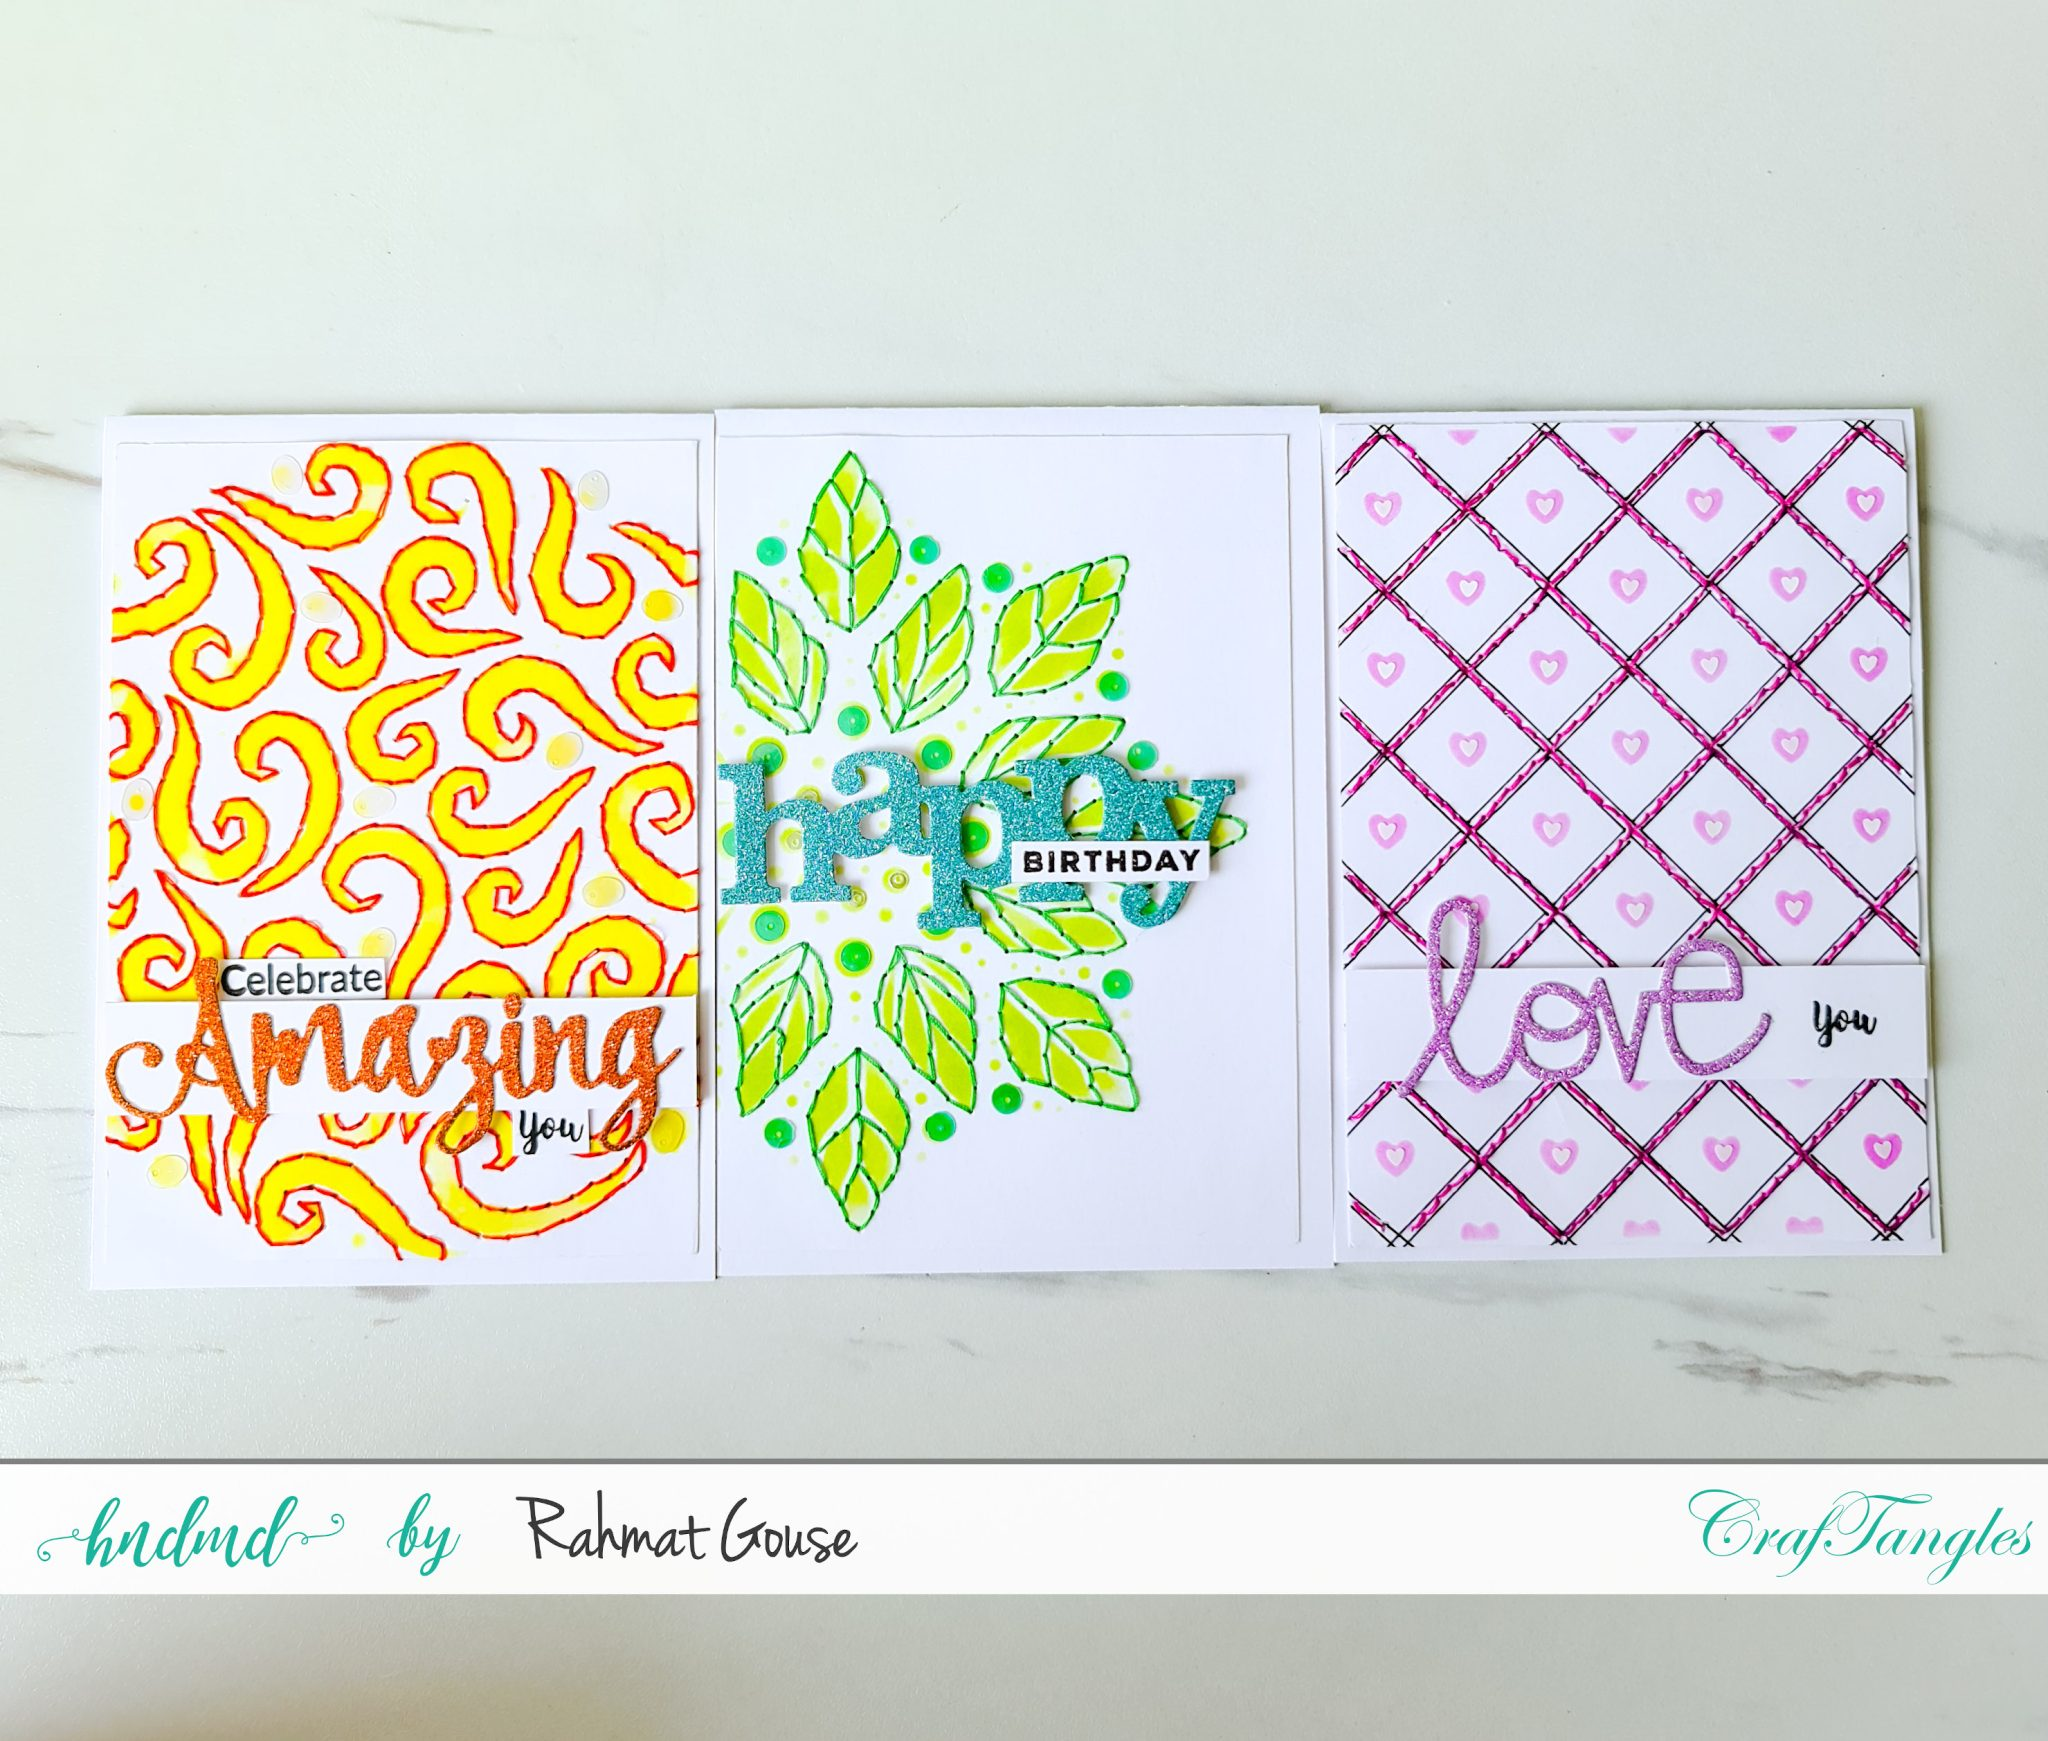 3 cards in the post with sewing